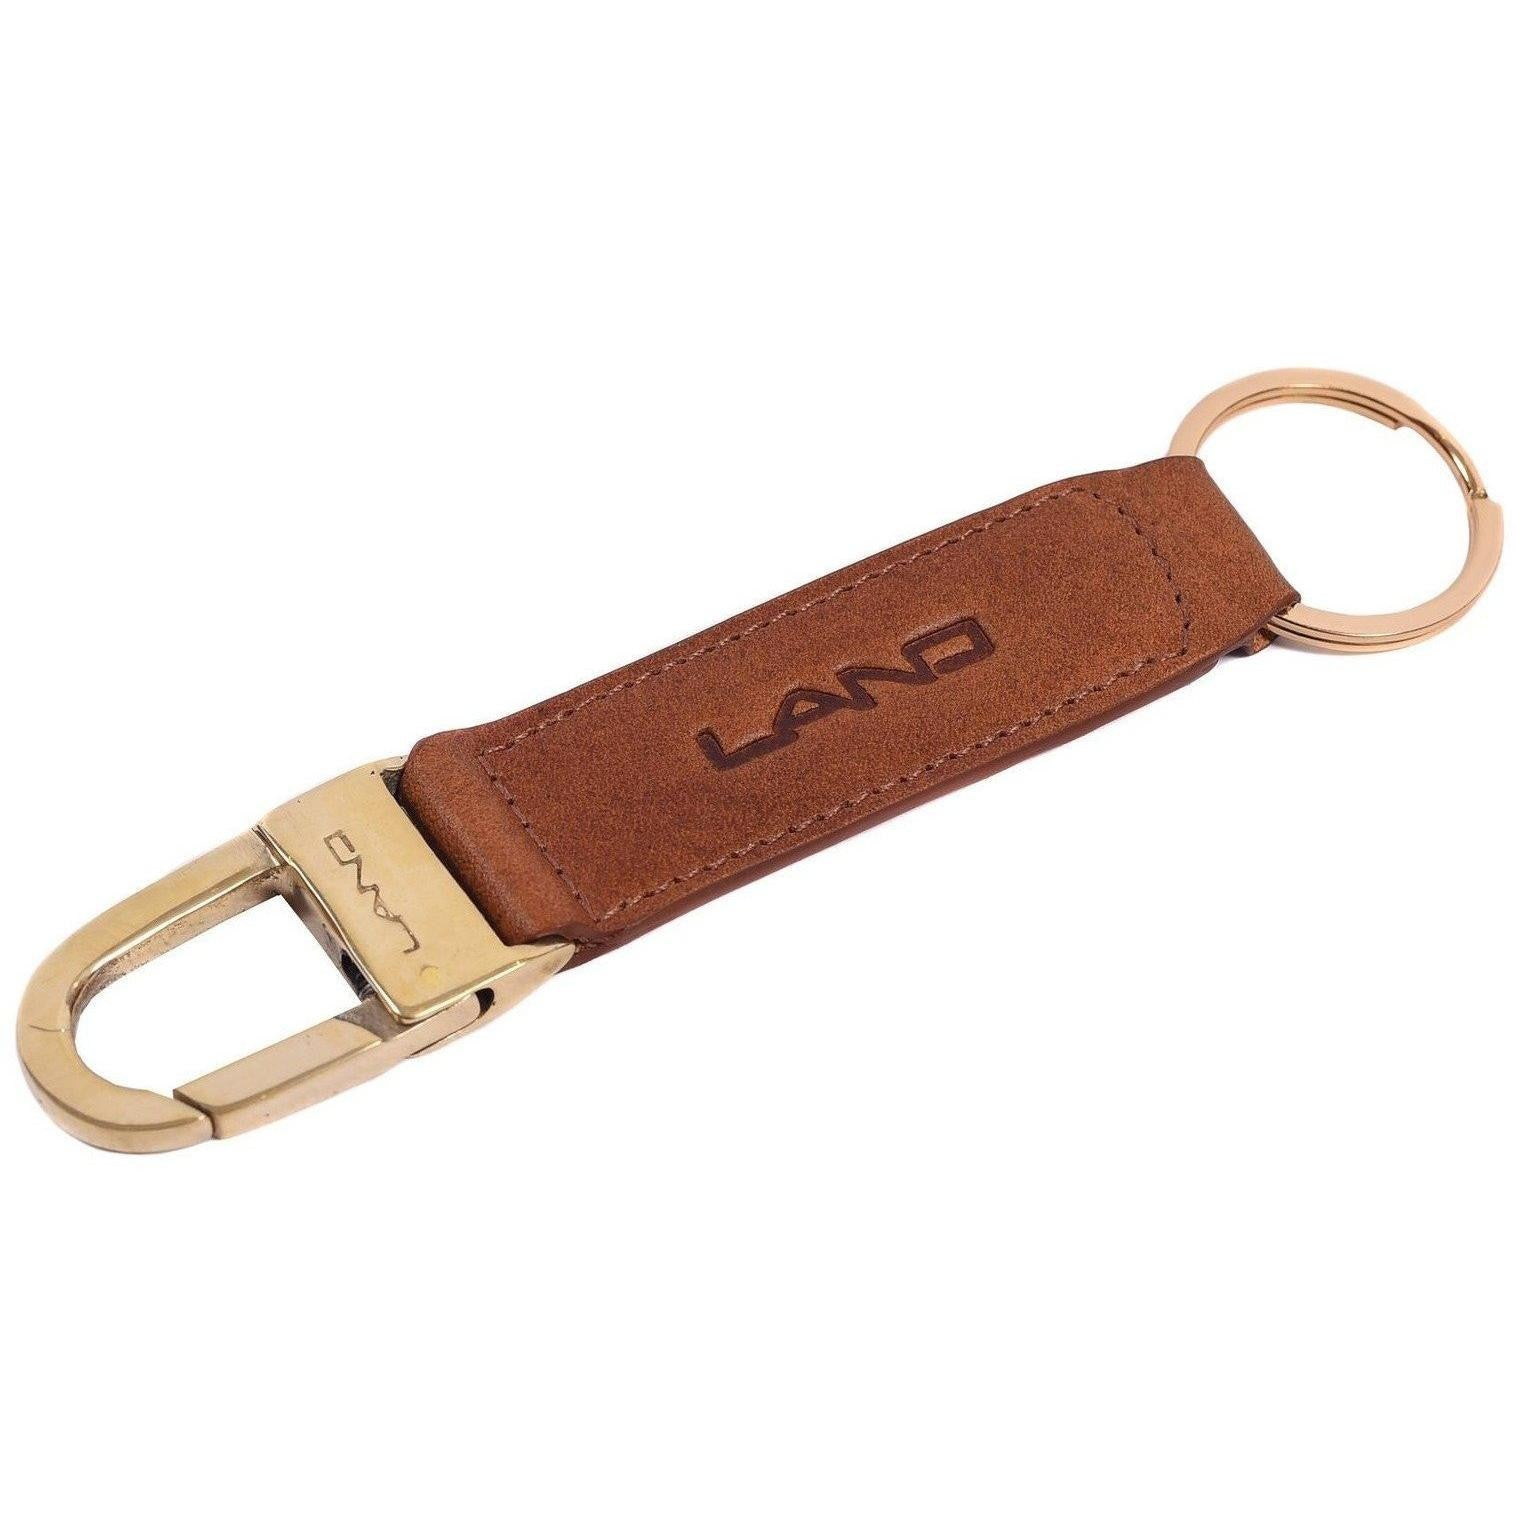 Limited Key Ring, Key Ring | LAND Leather